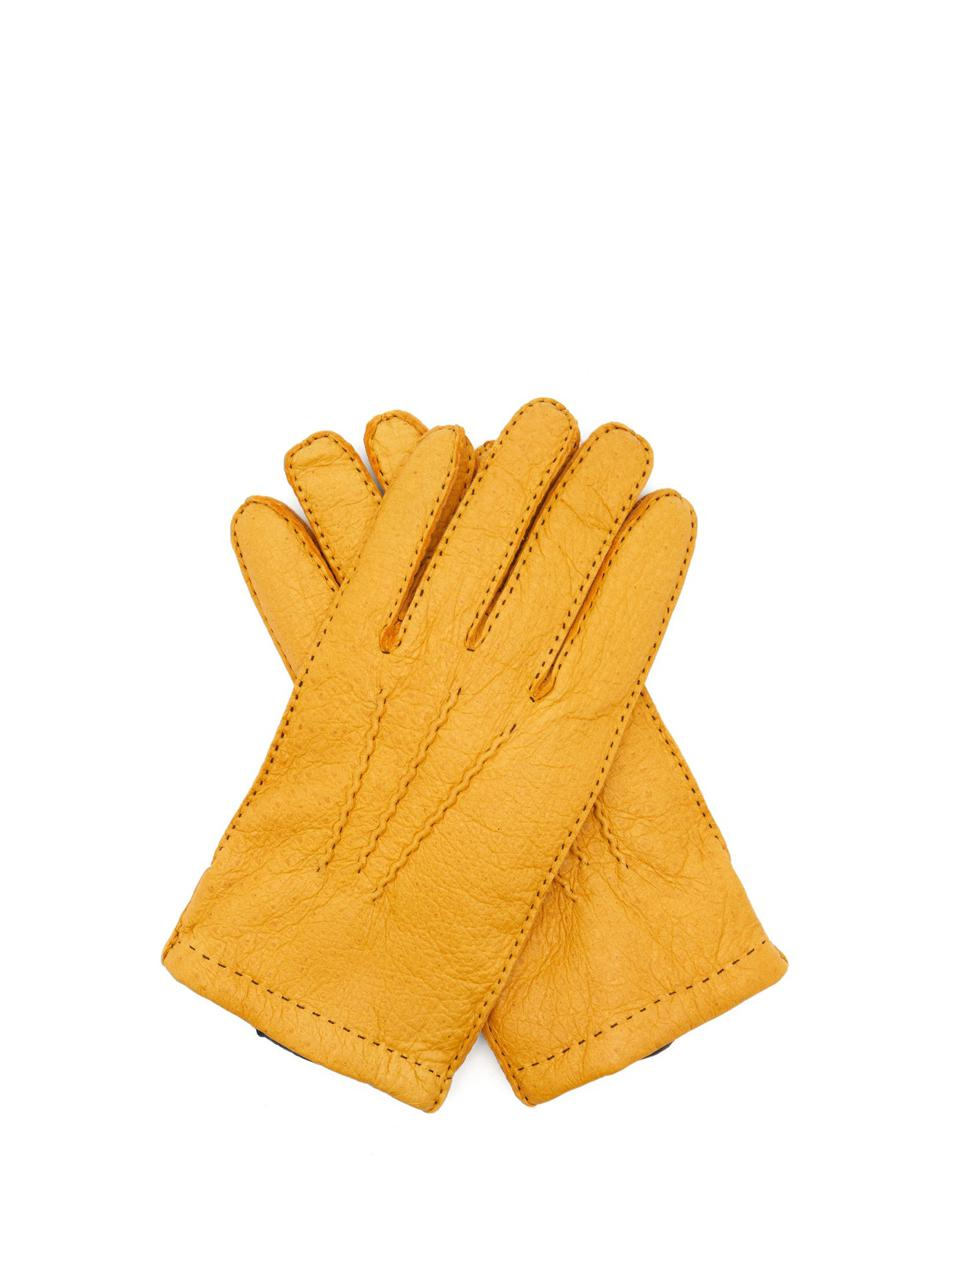 The Best Men's Gloves